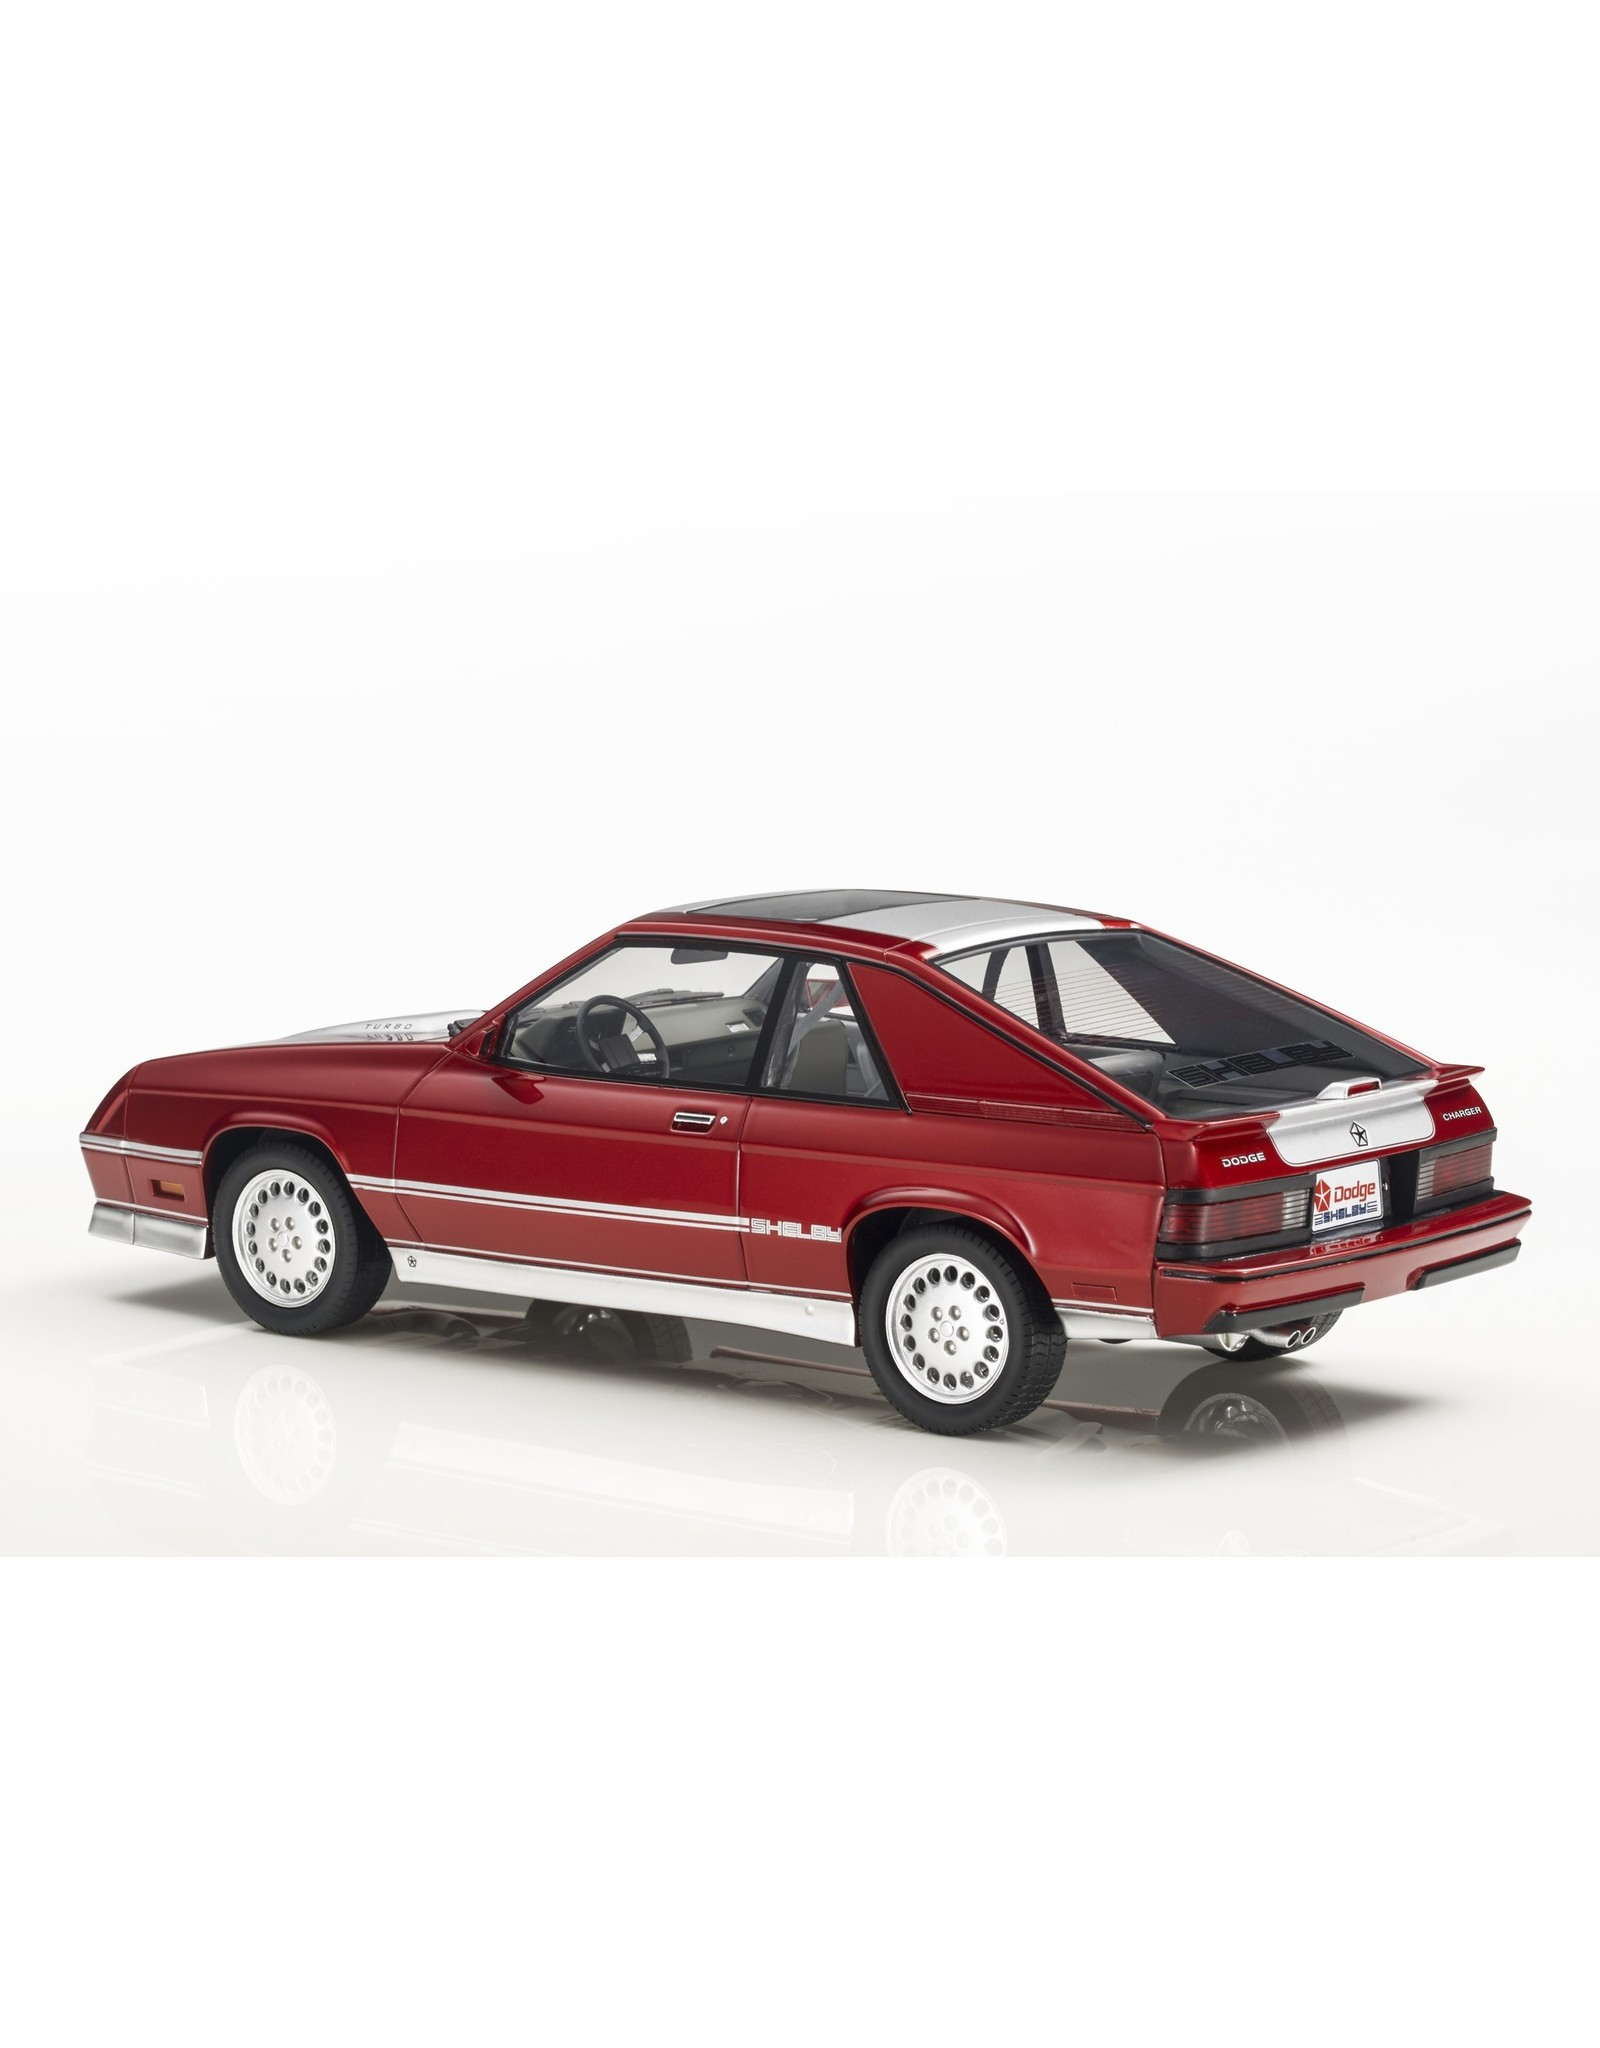 Dodge Dodge Shelby Charger Turbo 1985 - 1:18 - LS Collectibles